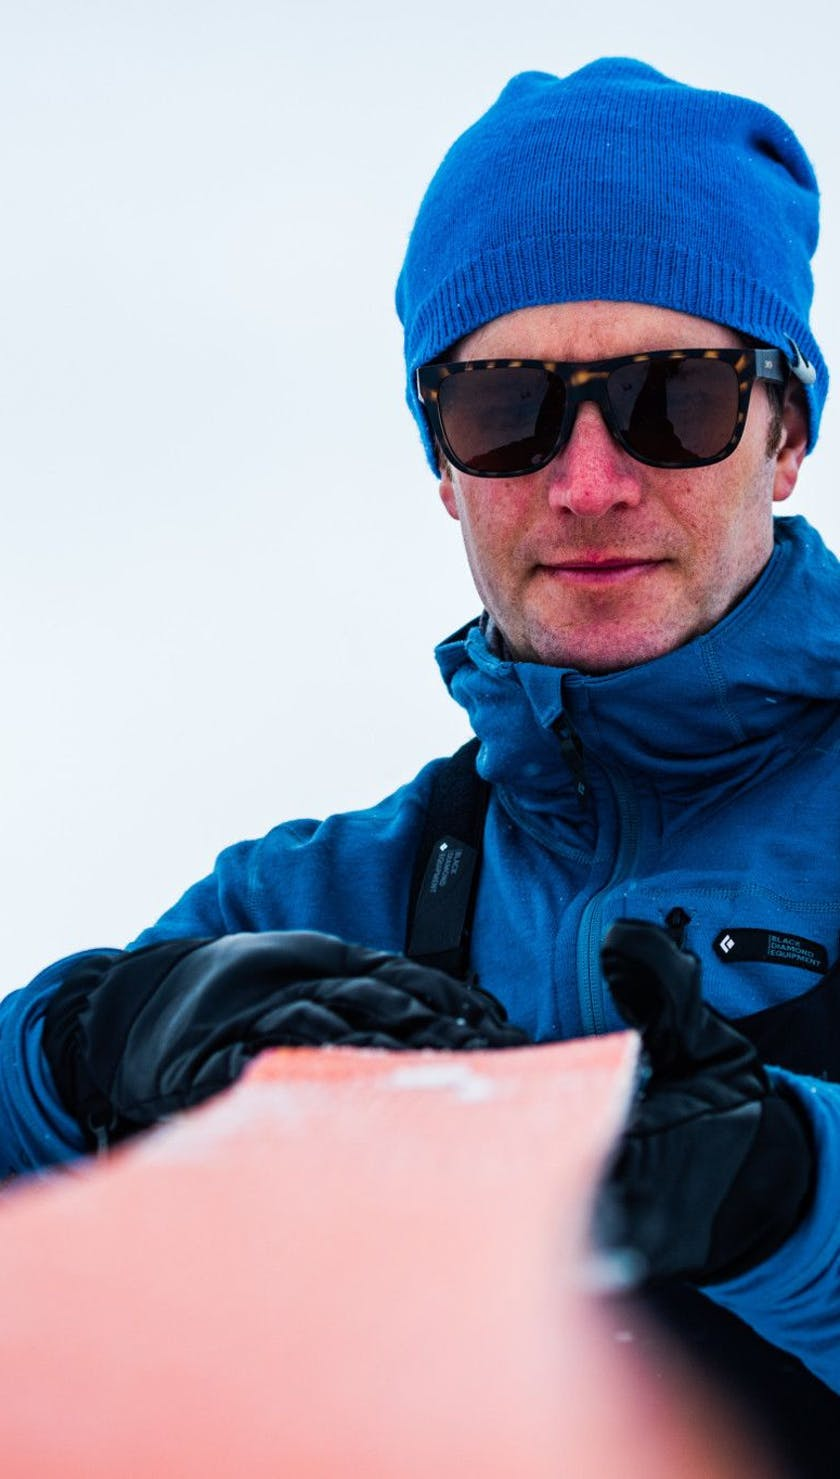 A person looking at their Acension skins on their ski